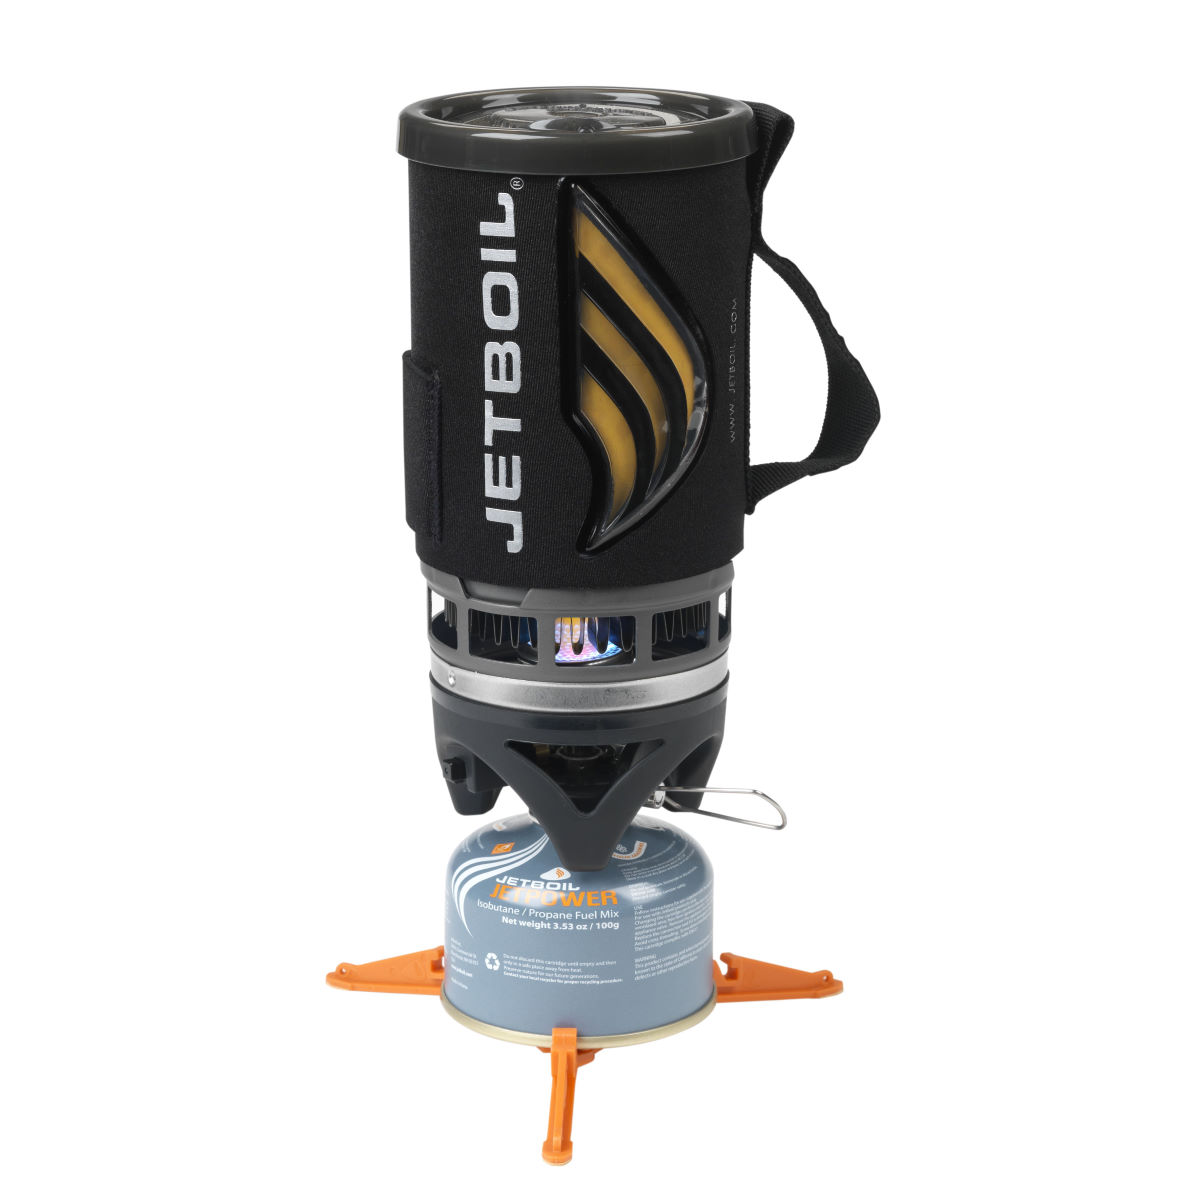 Image of Réchaud Jetboil Flash (carbone) - Taille unique Carbone | Réchauds